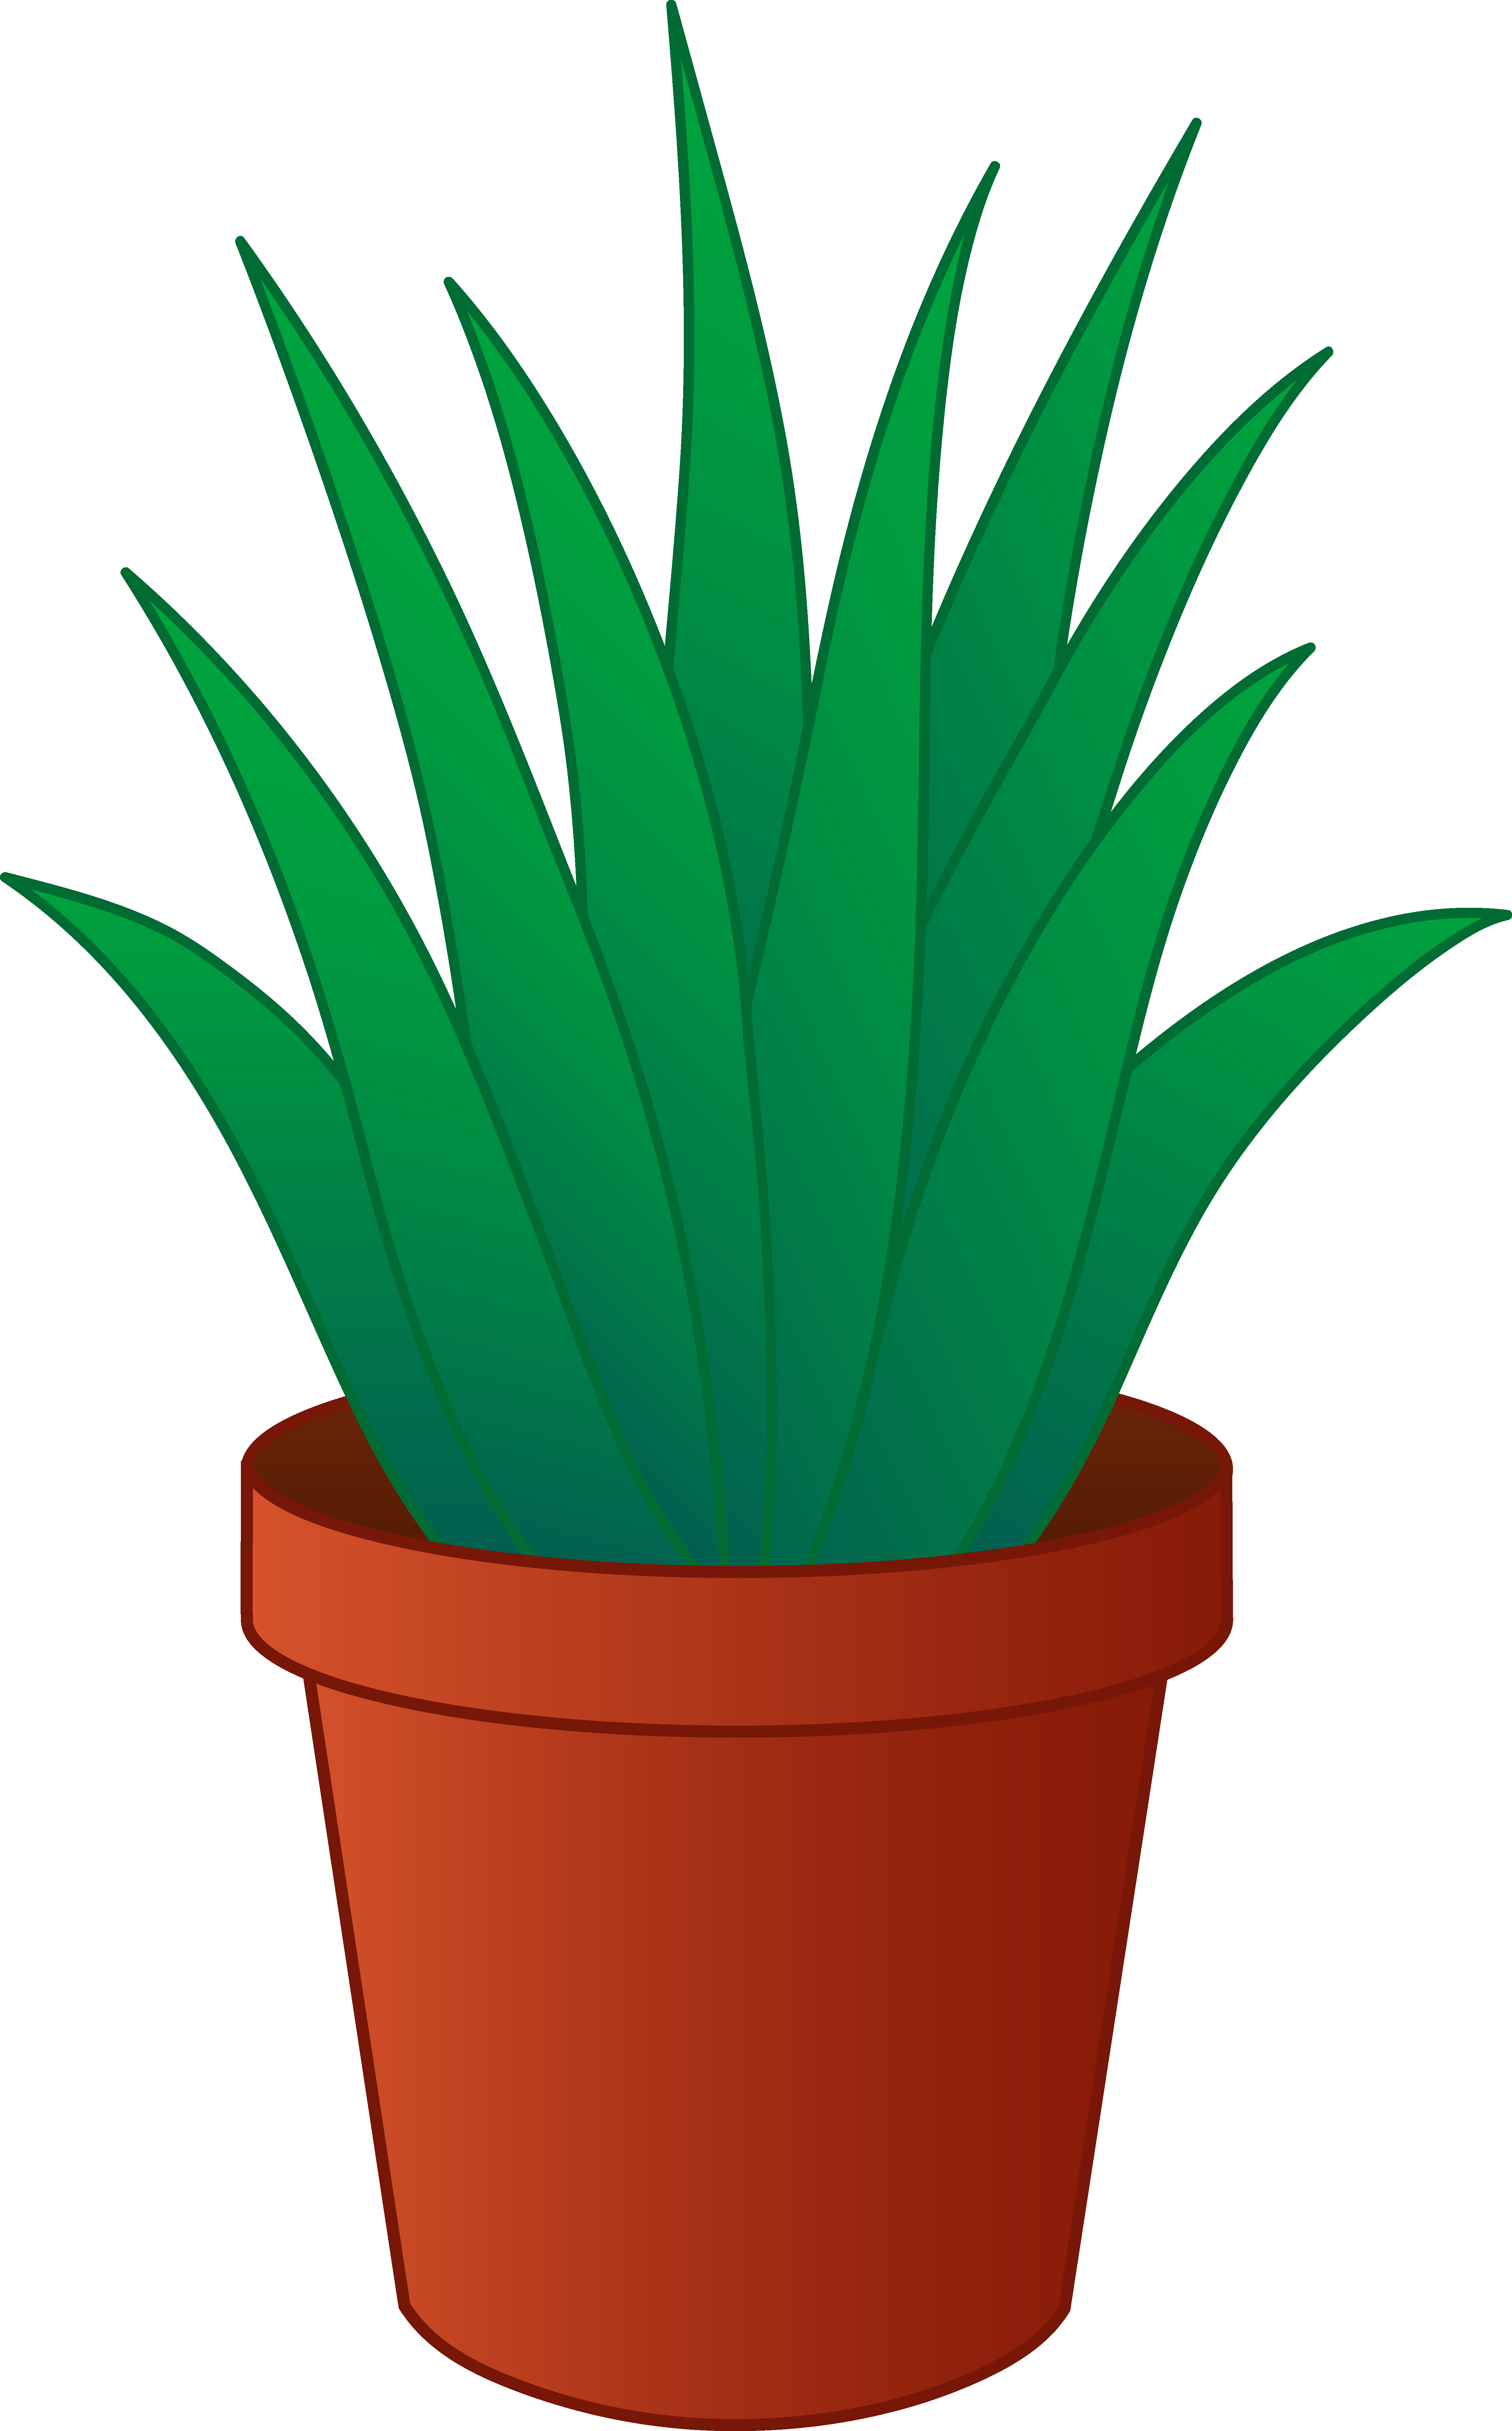 Plant clip art images jpg library download Plants Clip Art Free | Clipart Panda - Free Clipart Images jpg library download